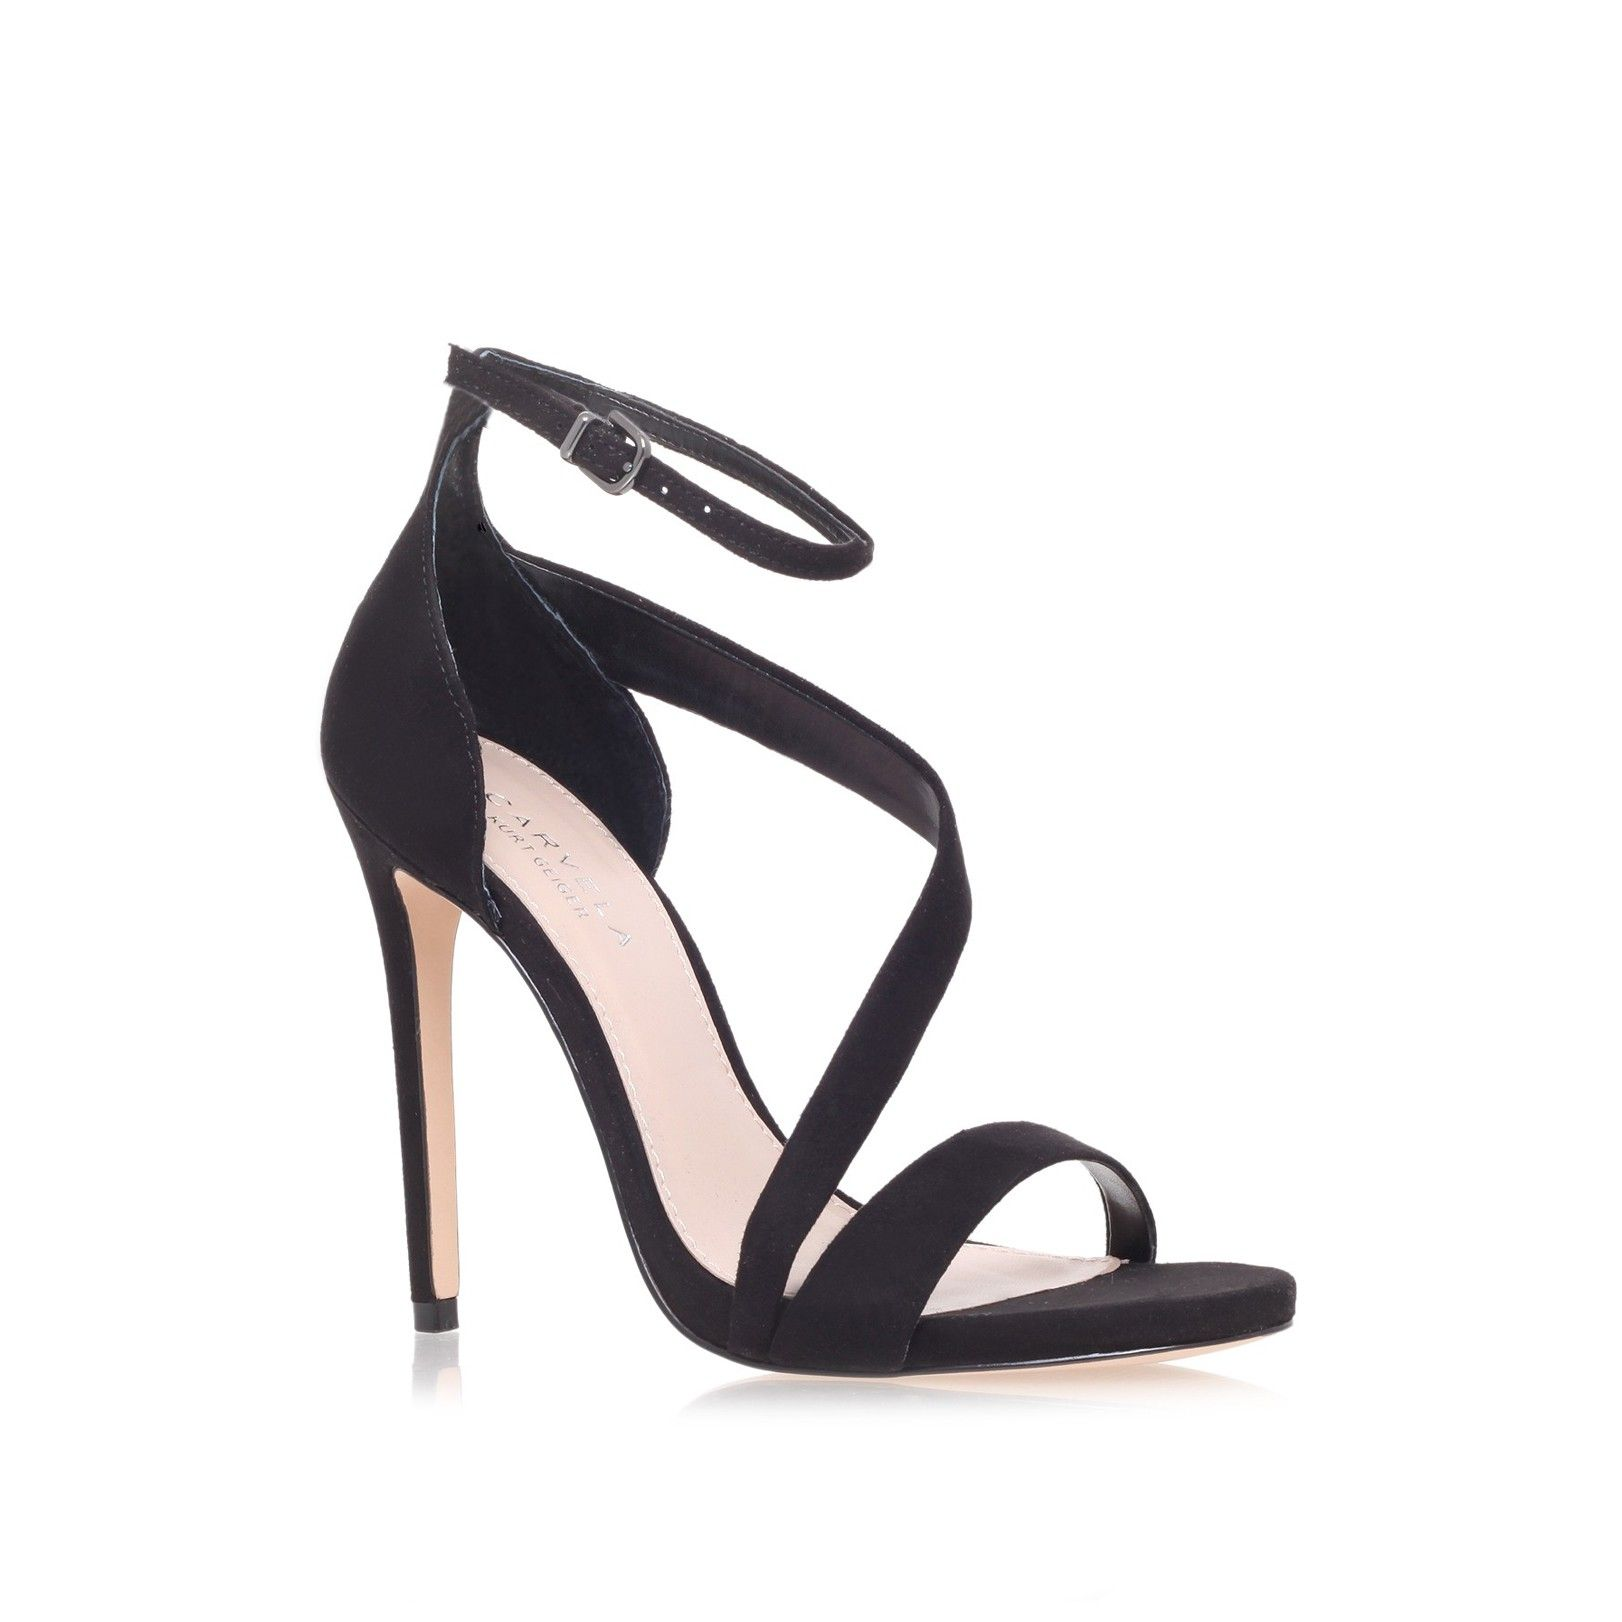 1000  images about heels on Pinterest | Uk online, Woman shoes and ...